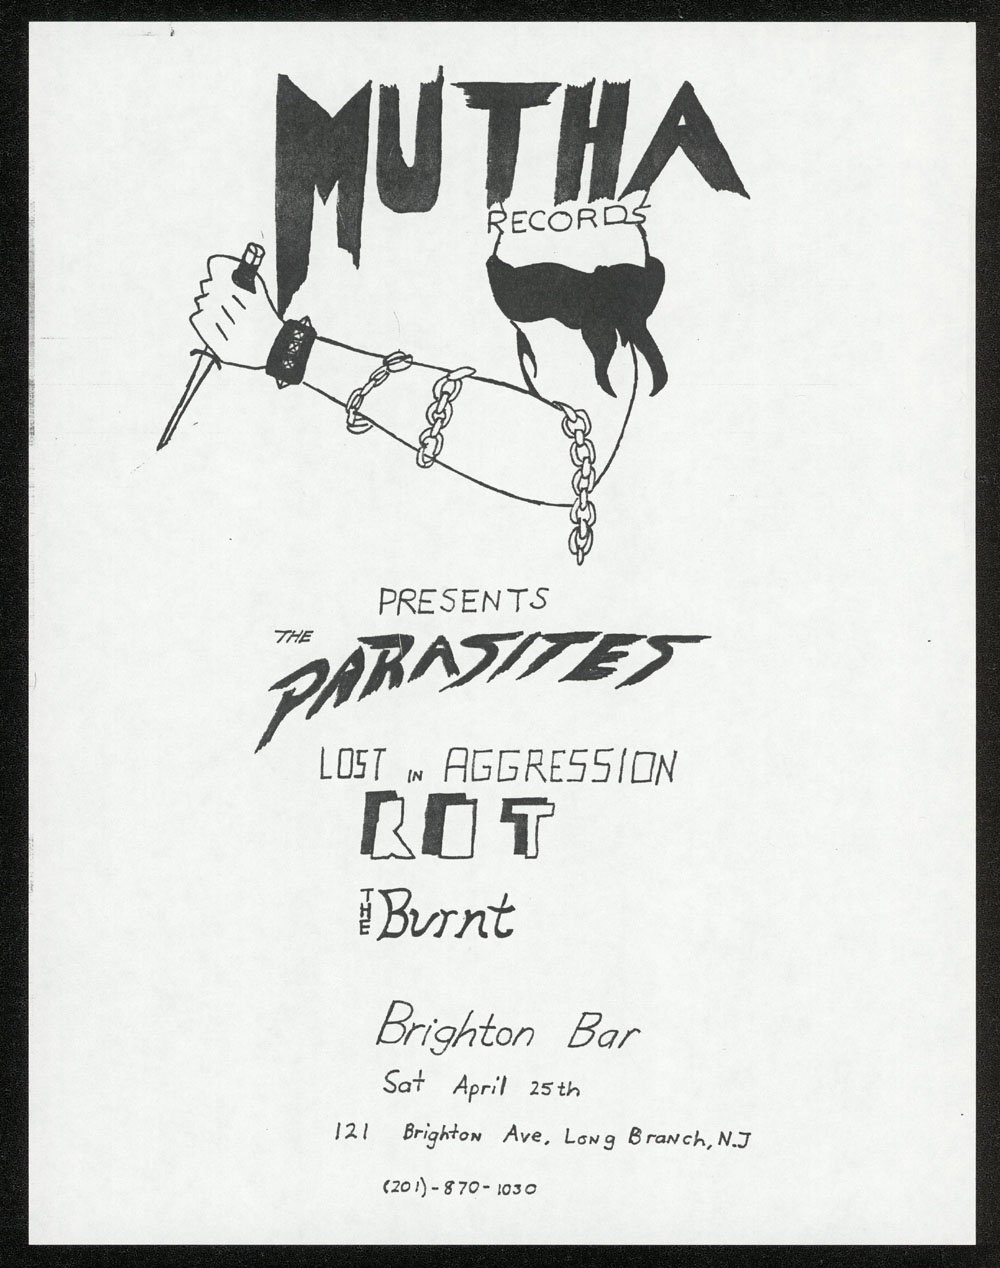 MUTHA RECORDS presents Parasites, Lost In Aggression, Rot, Burnt at Brighton Bar